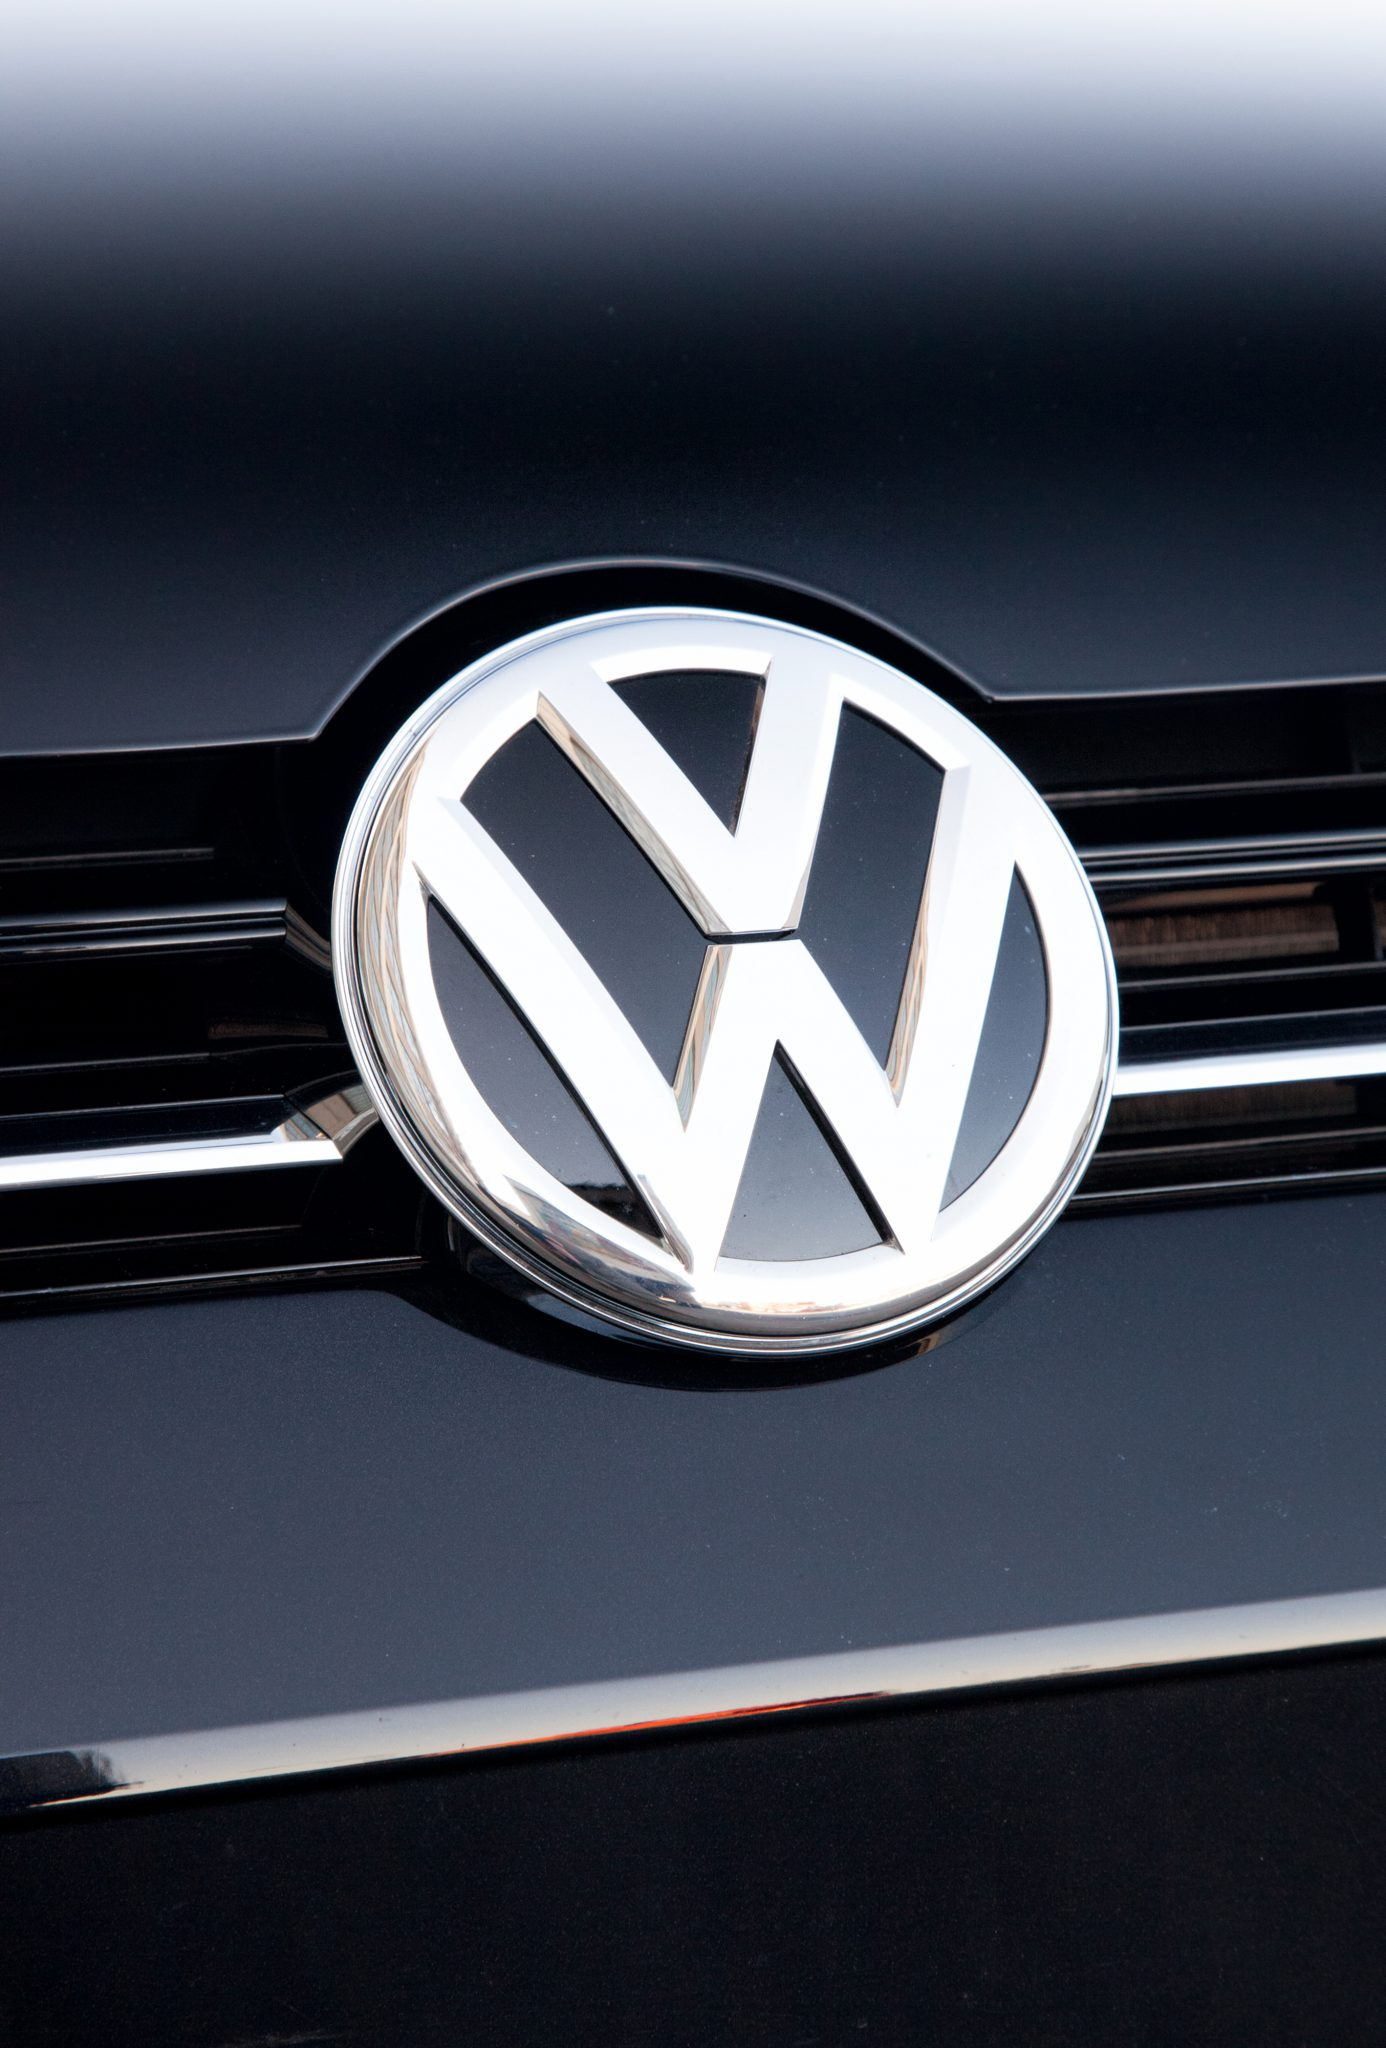 Vw In Hot Water For Cheating Emissions Tests The News Wheel